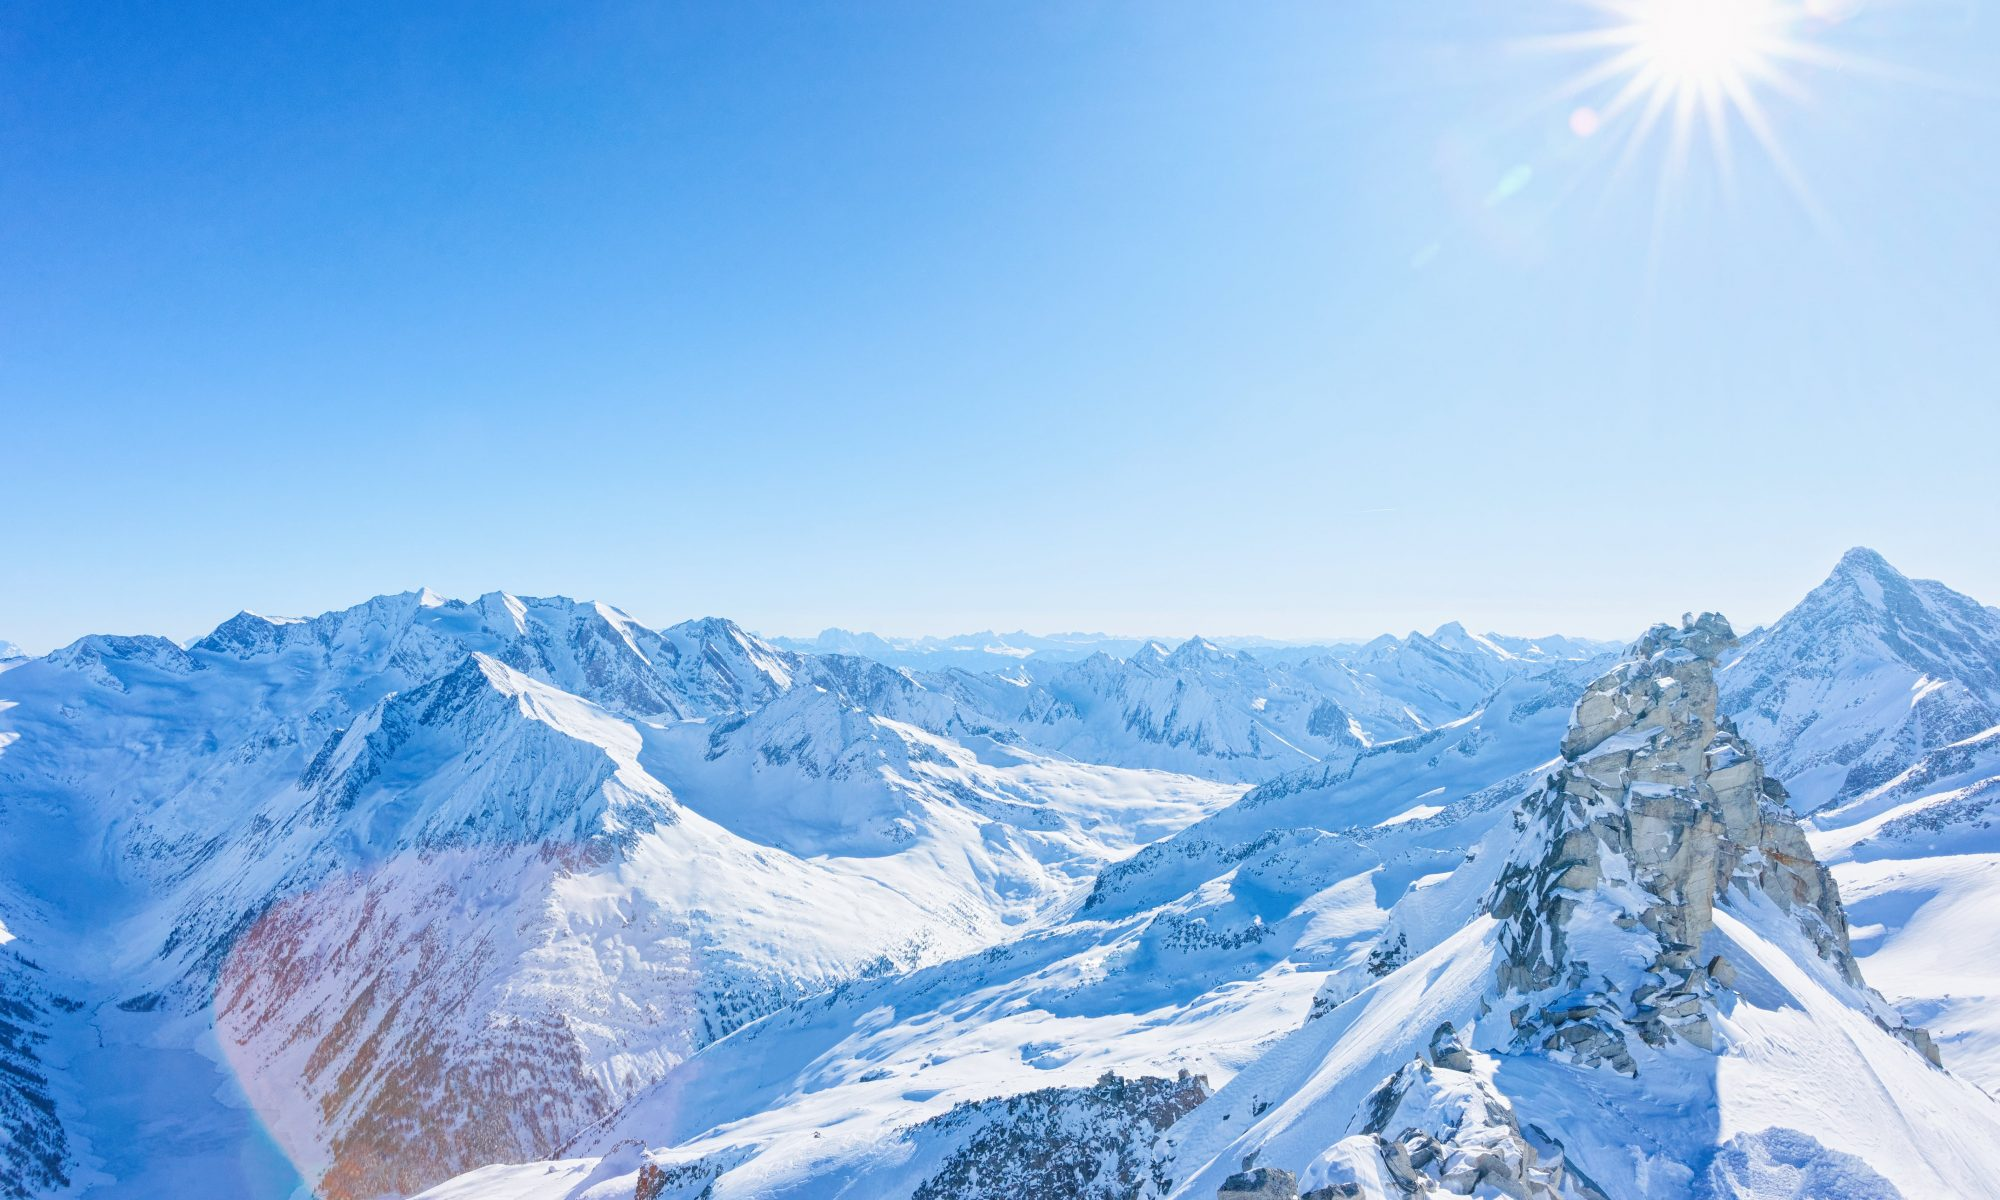 A beautiful view of Mayrhofen in Tyrol, during the 2020/20 ski season safe despite Covid-19.